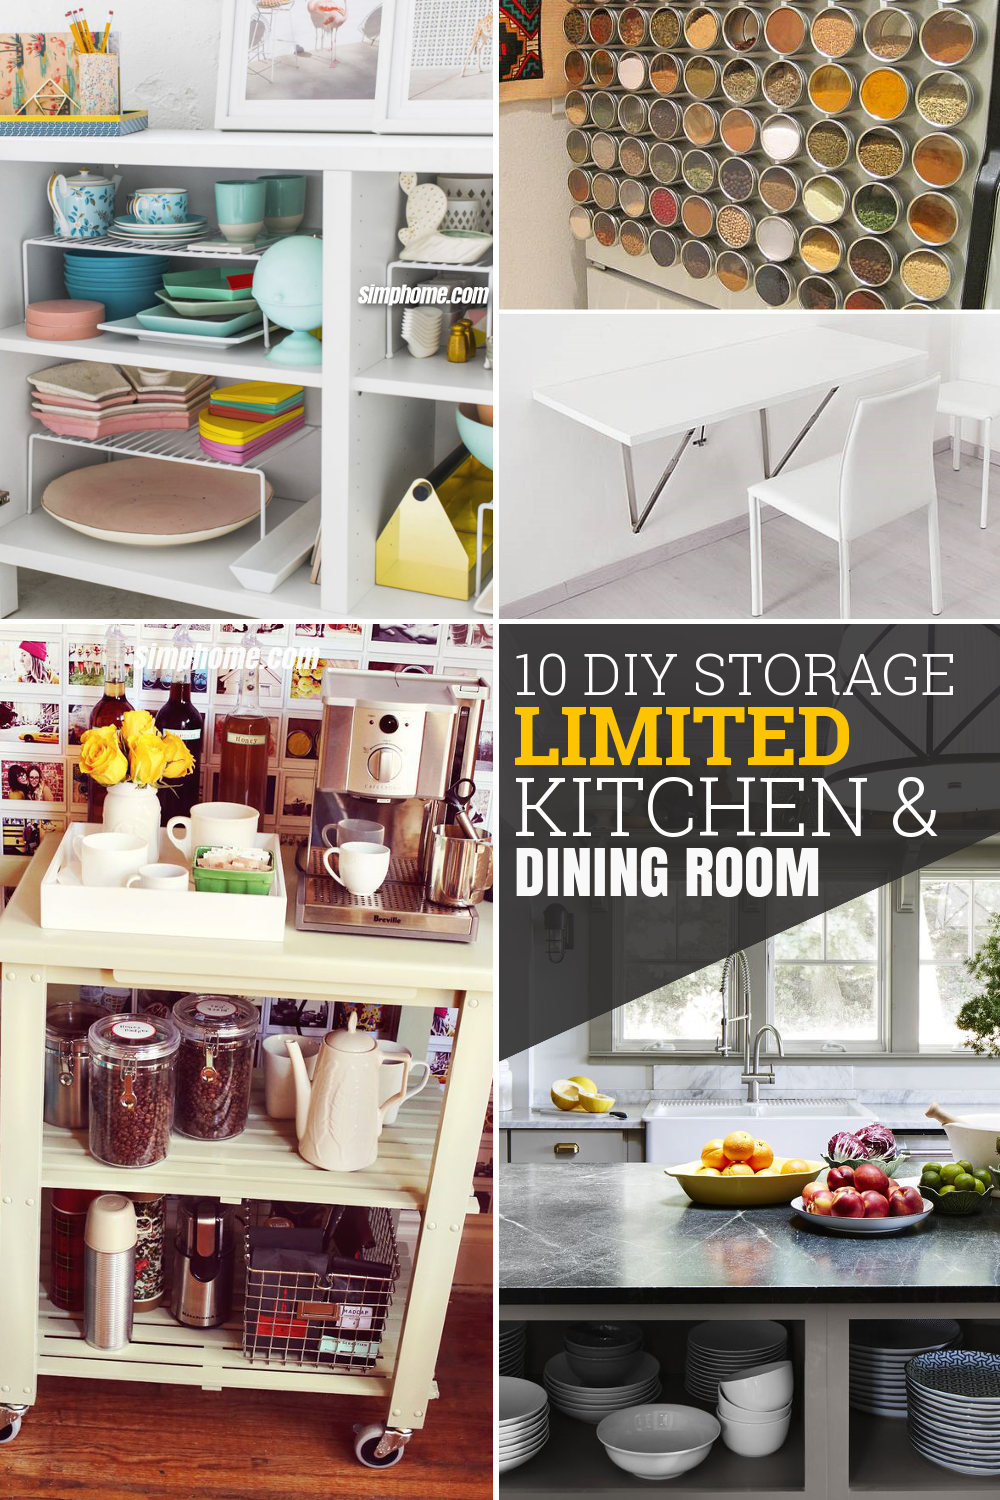 10 DIY Storage Ideas for Limited Kitchen and Dining Room via Simphome com Pinterest Featured